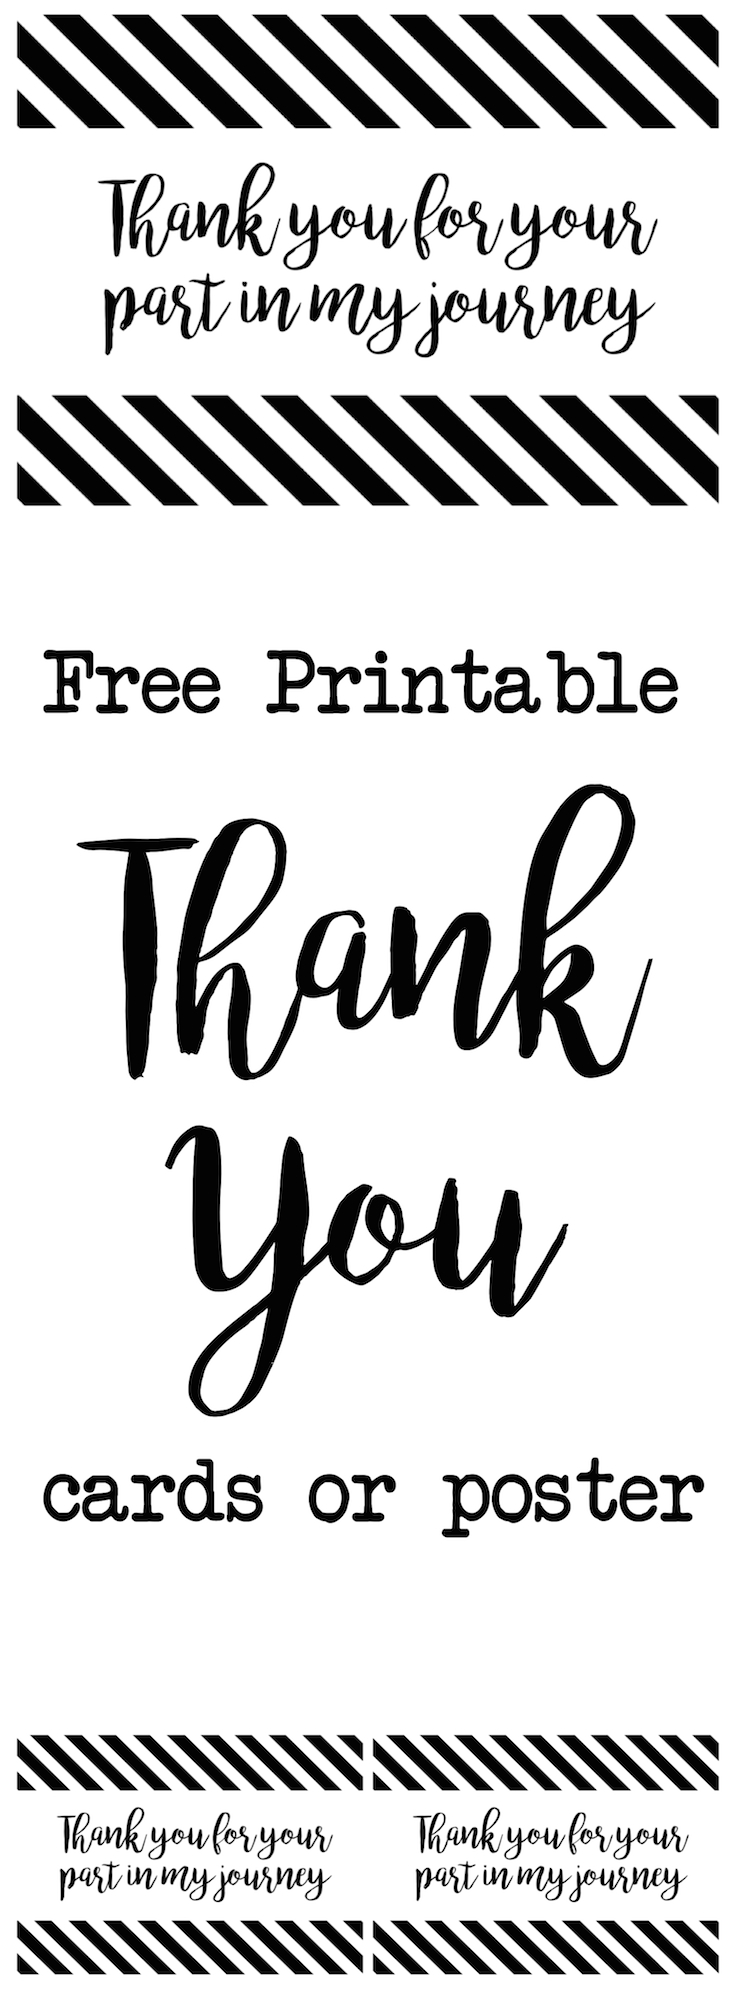 picture relating to Free Printable Thank You Cards to Color identified as Thank Your self Playing cards or Poster Thank by yourself for your element inside my